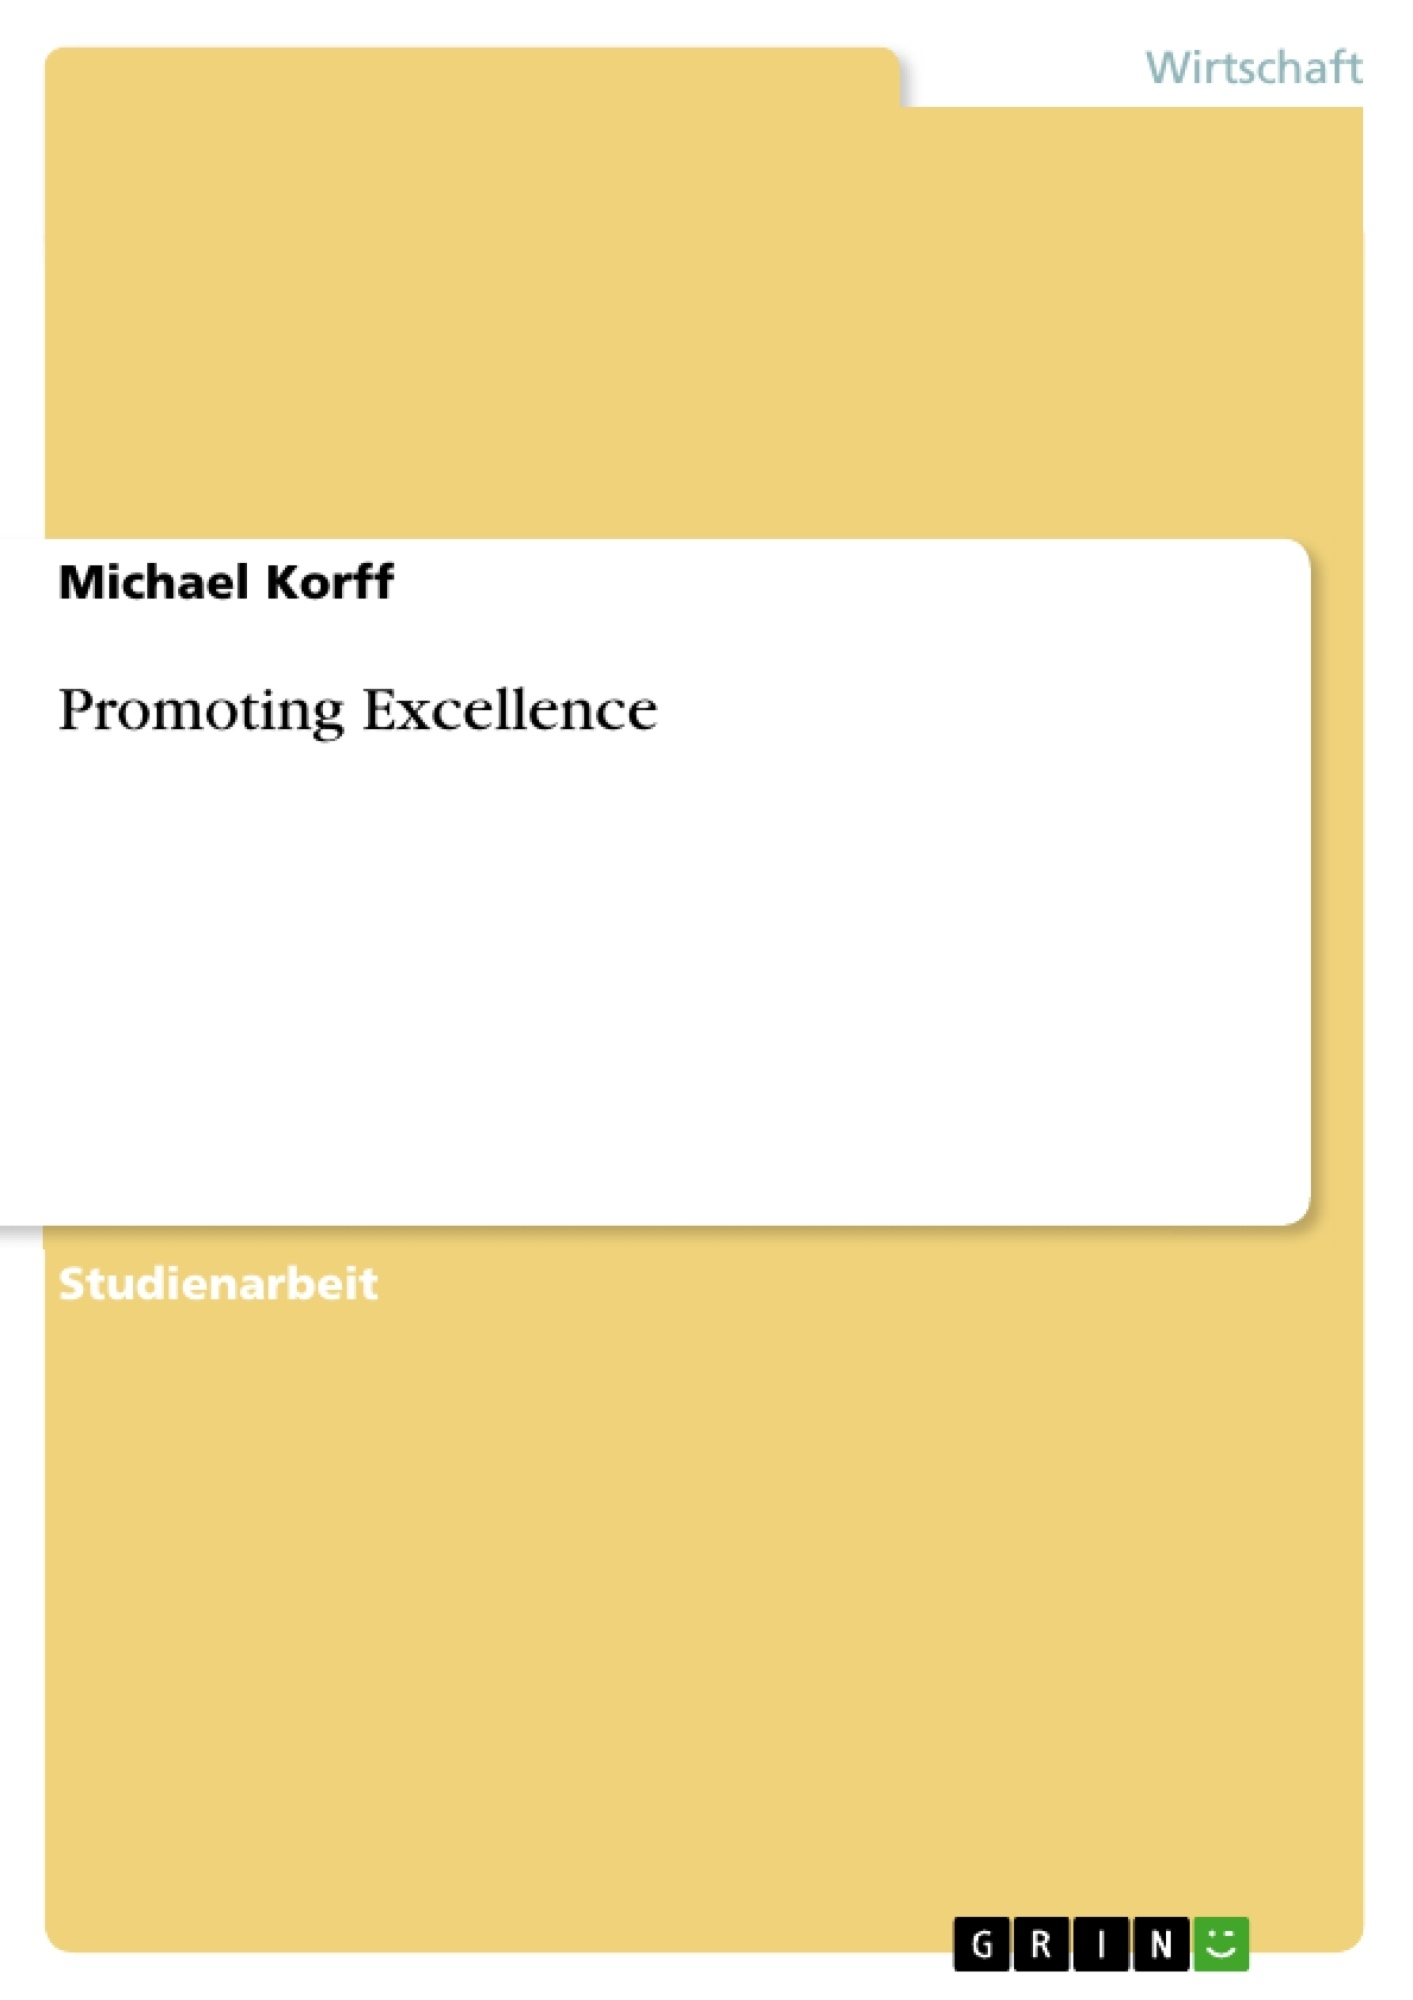 Titel: Promoting Excellence